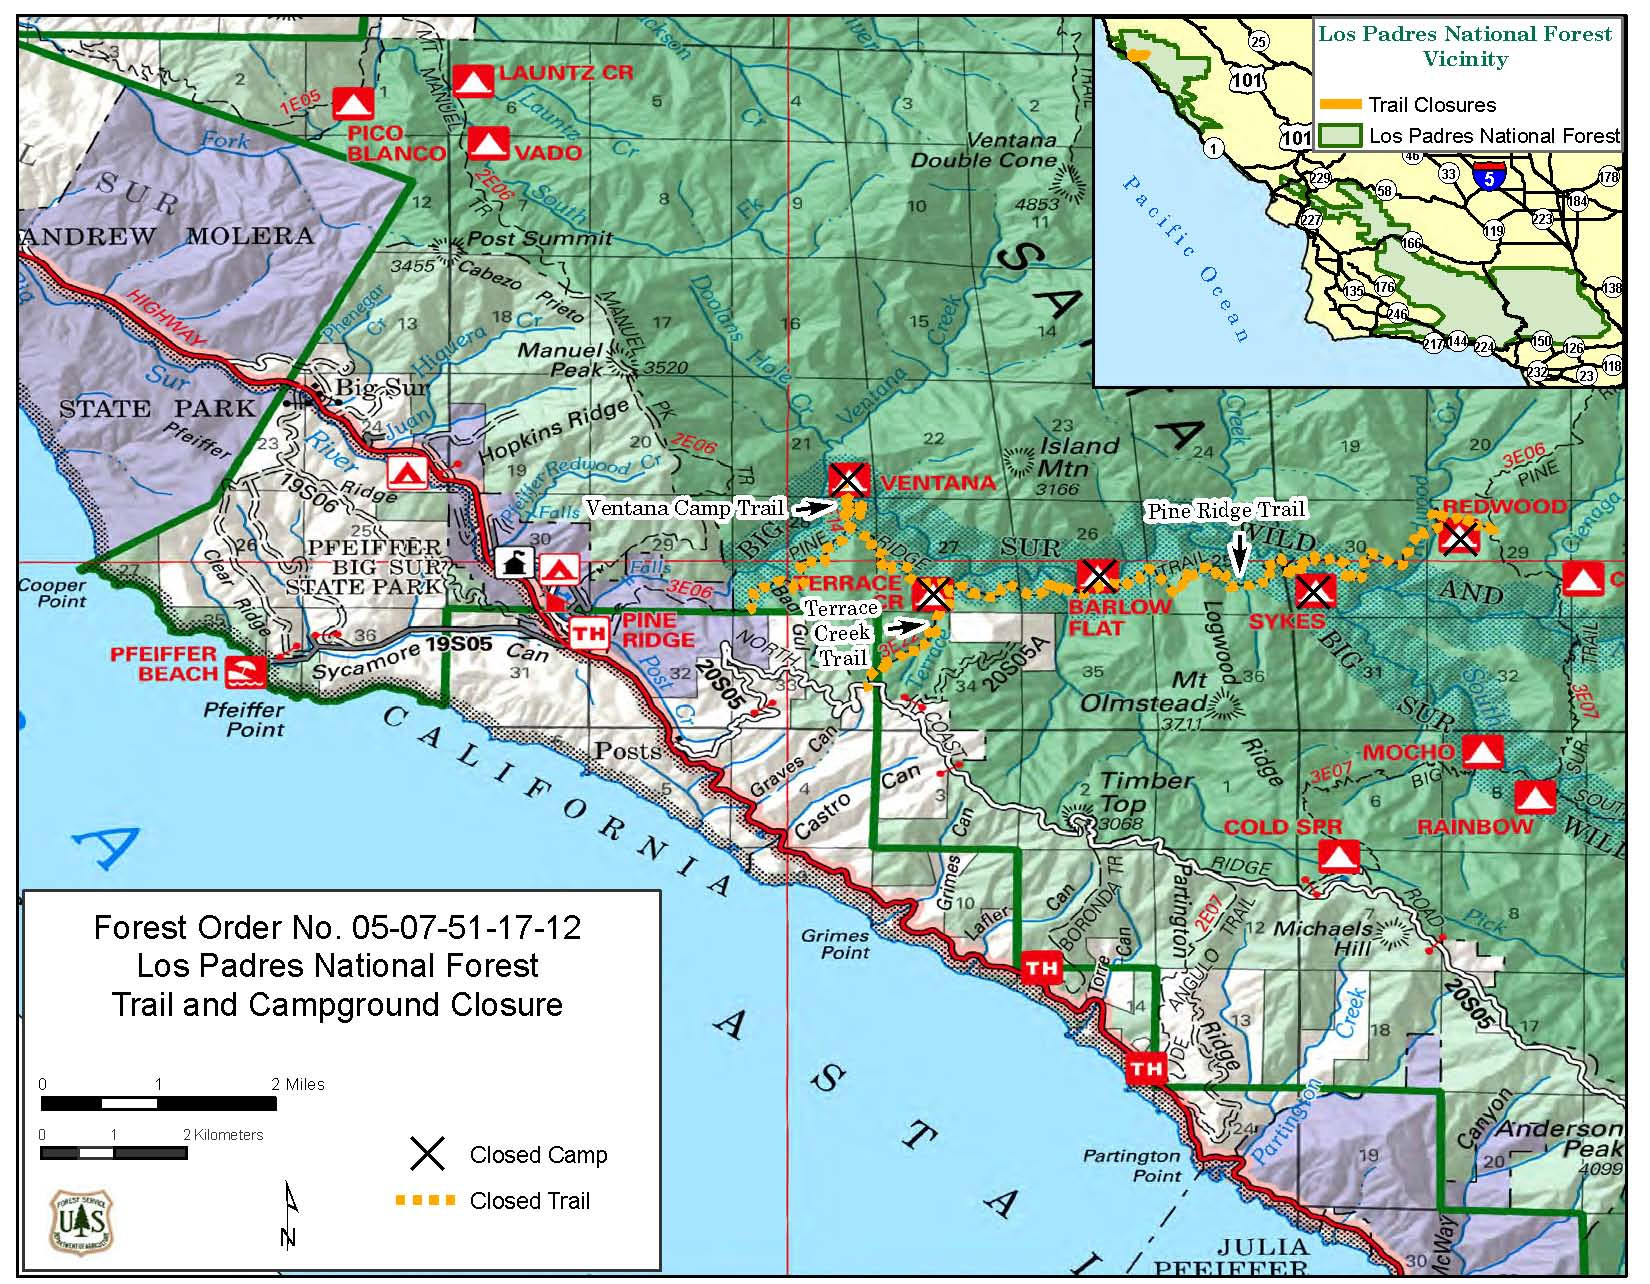 California State Parks Camping Map Fresh Sykes Camp - Ettcarworld - California State Parks Camping Map